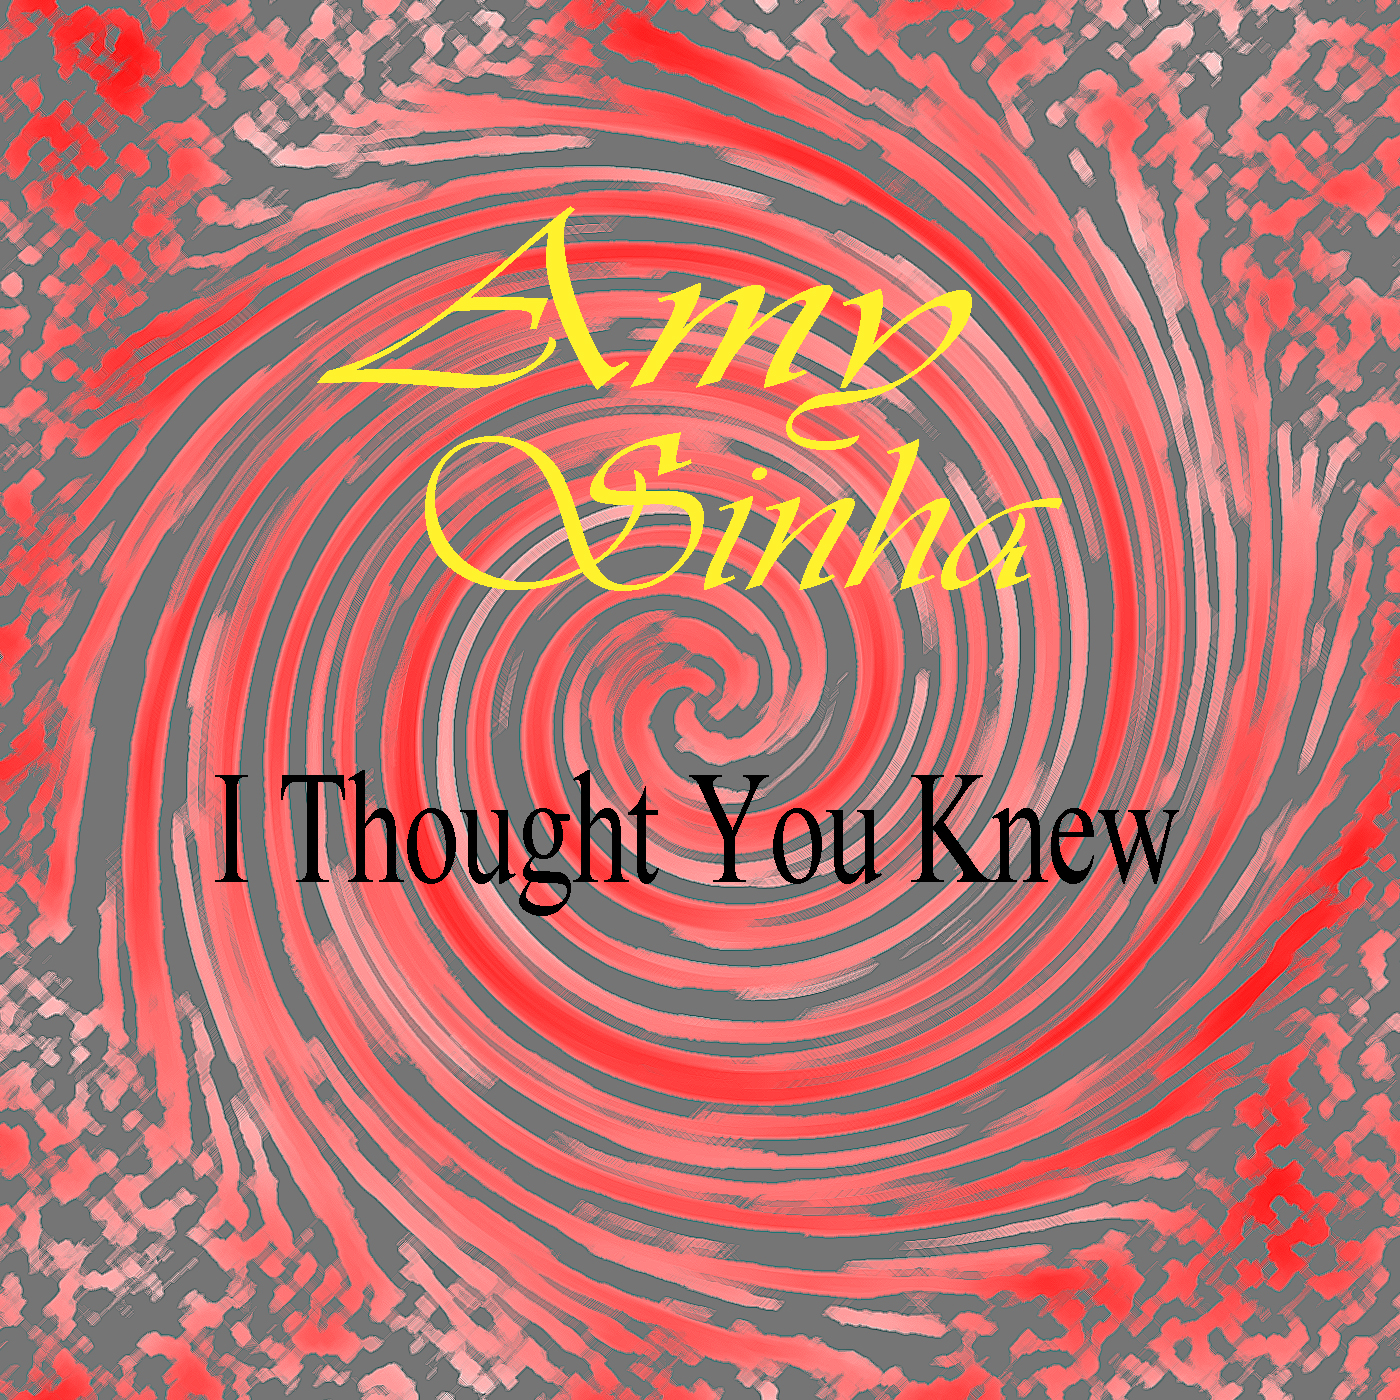 I thought you knew - Cover Art